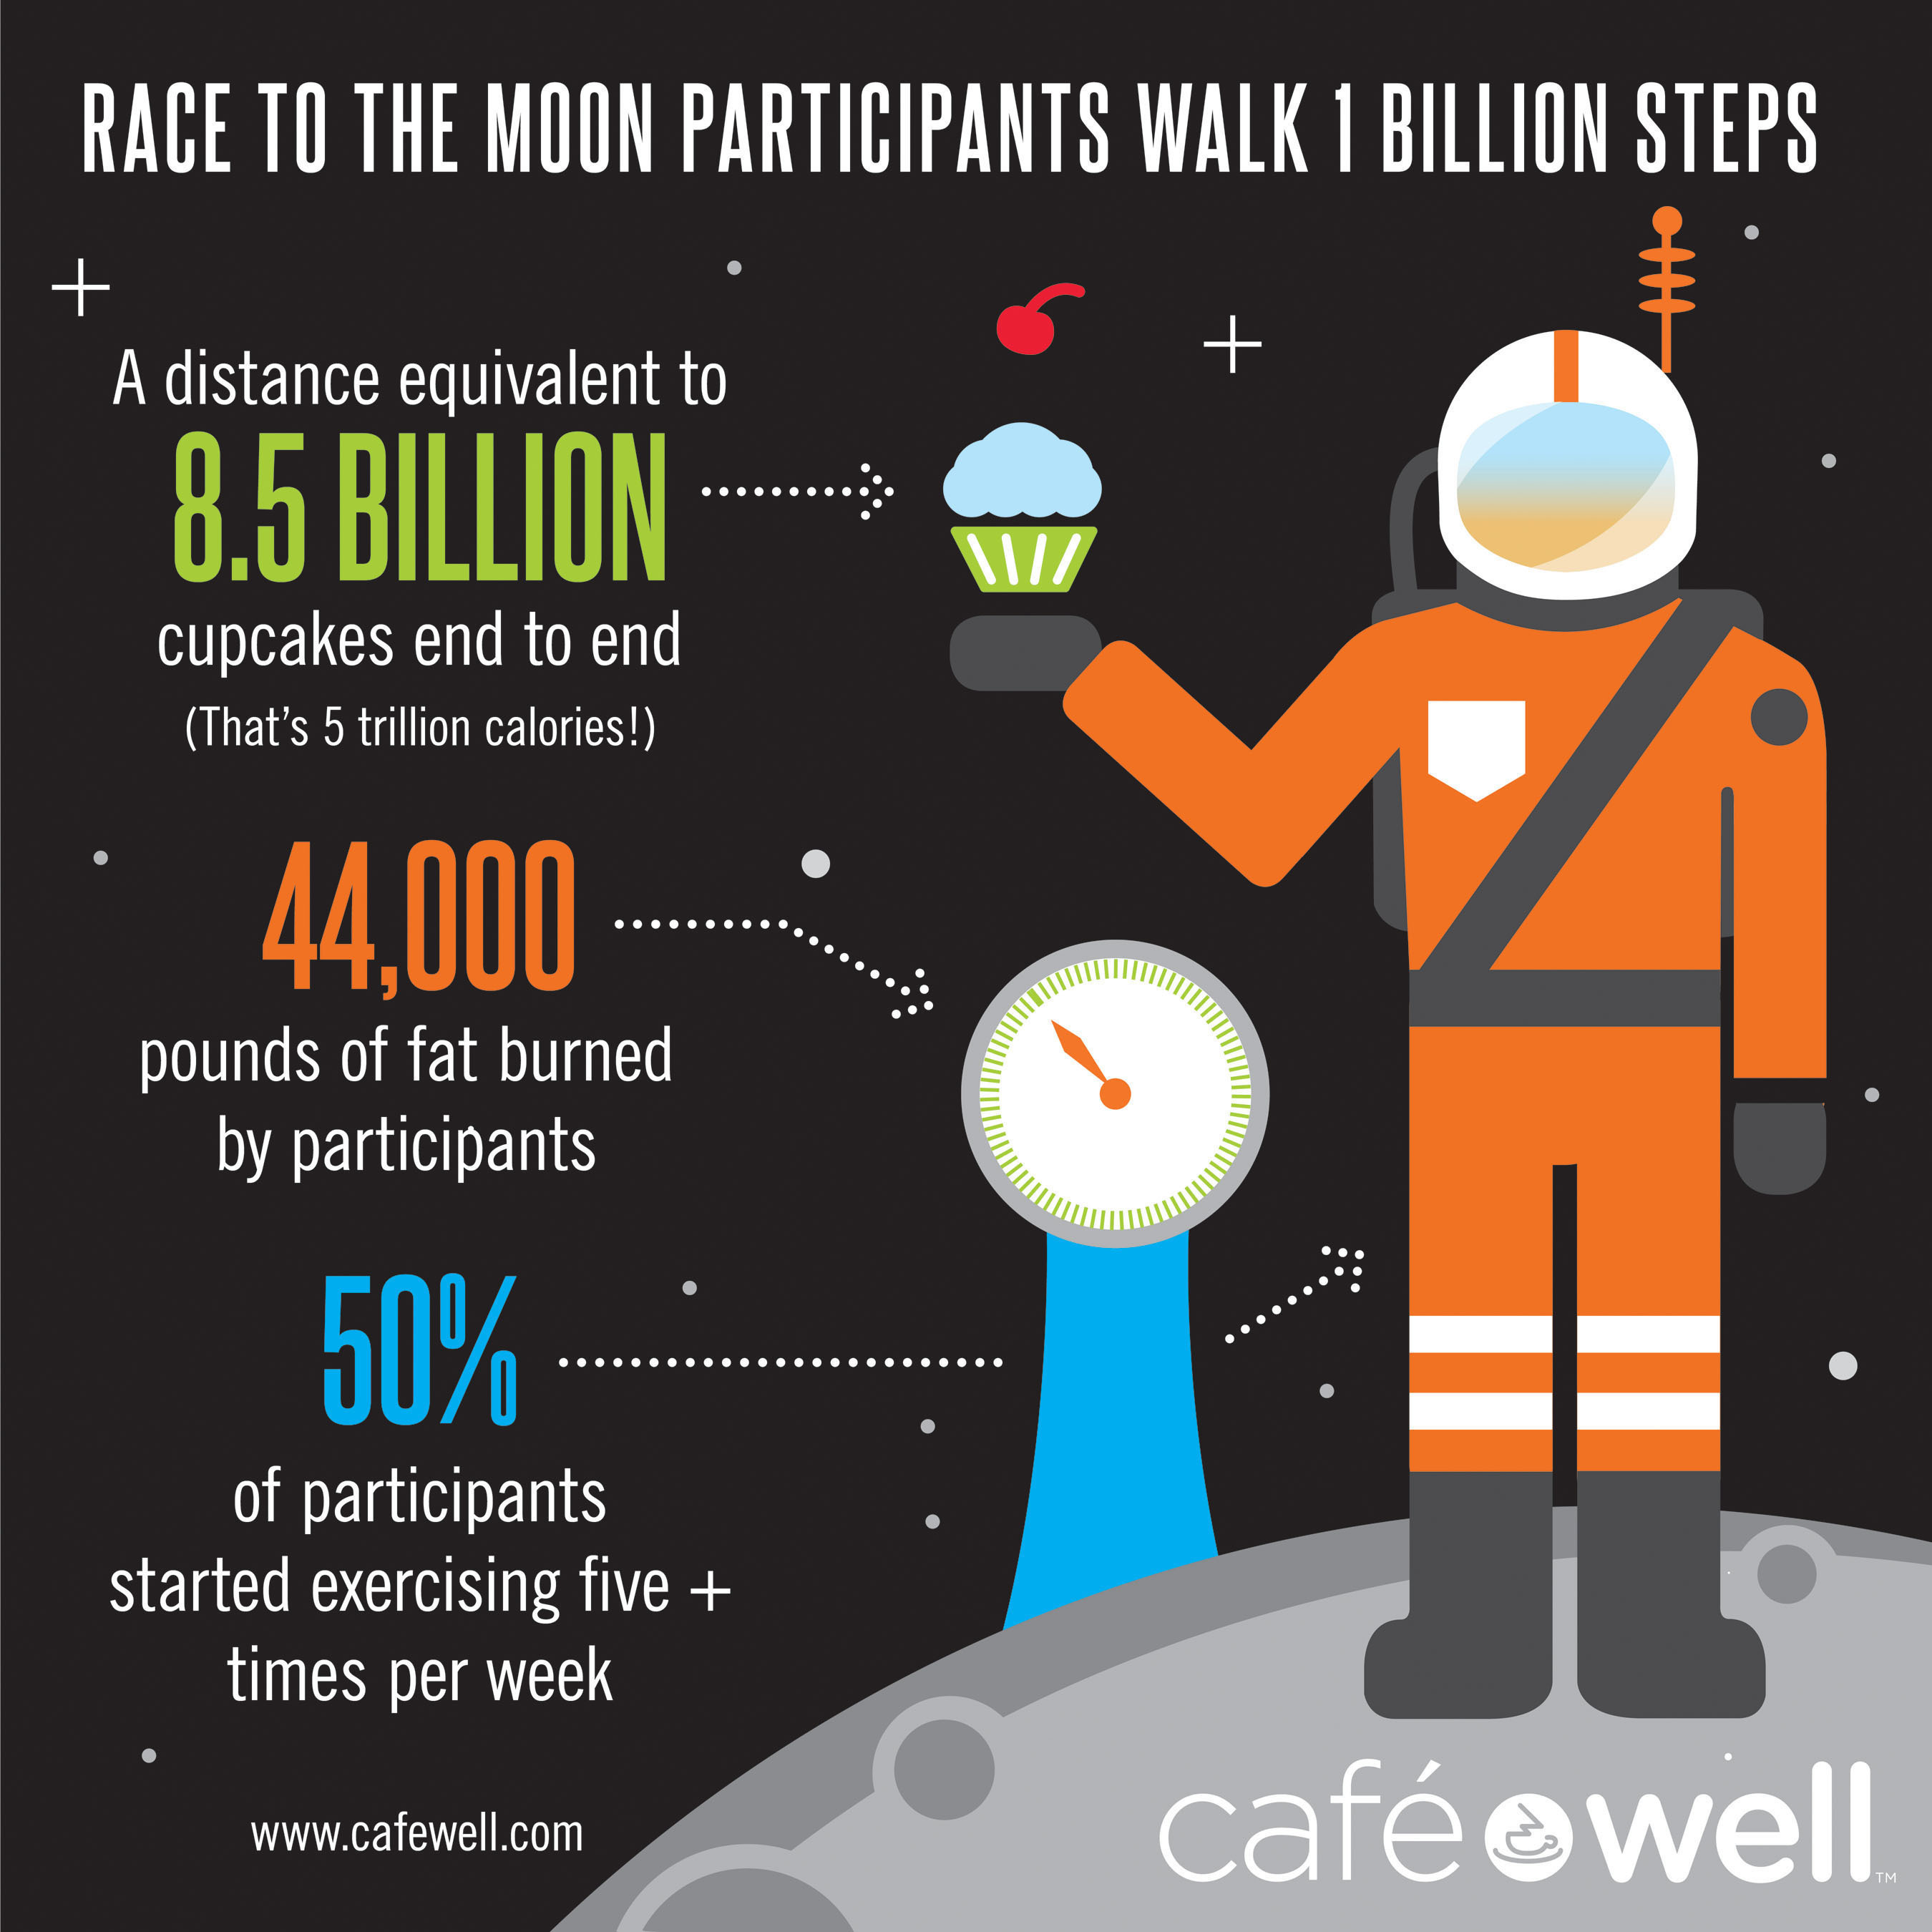 Over 1 Billion Stepped: Central Pennsylvanians have just walked 1 billion steps in the Race to the Moon - all ...